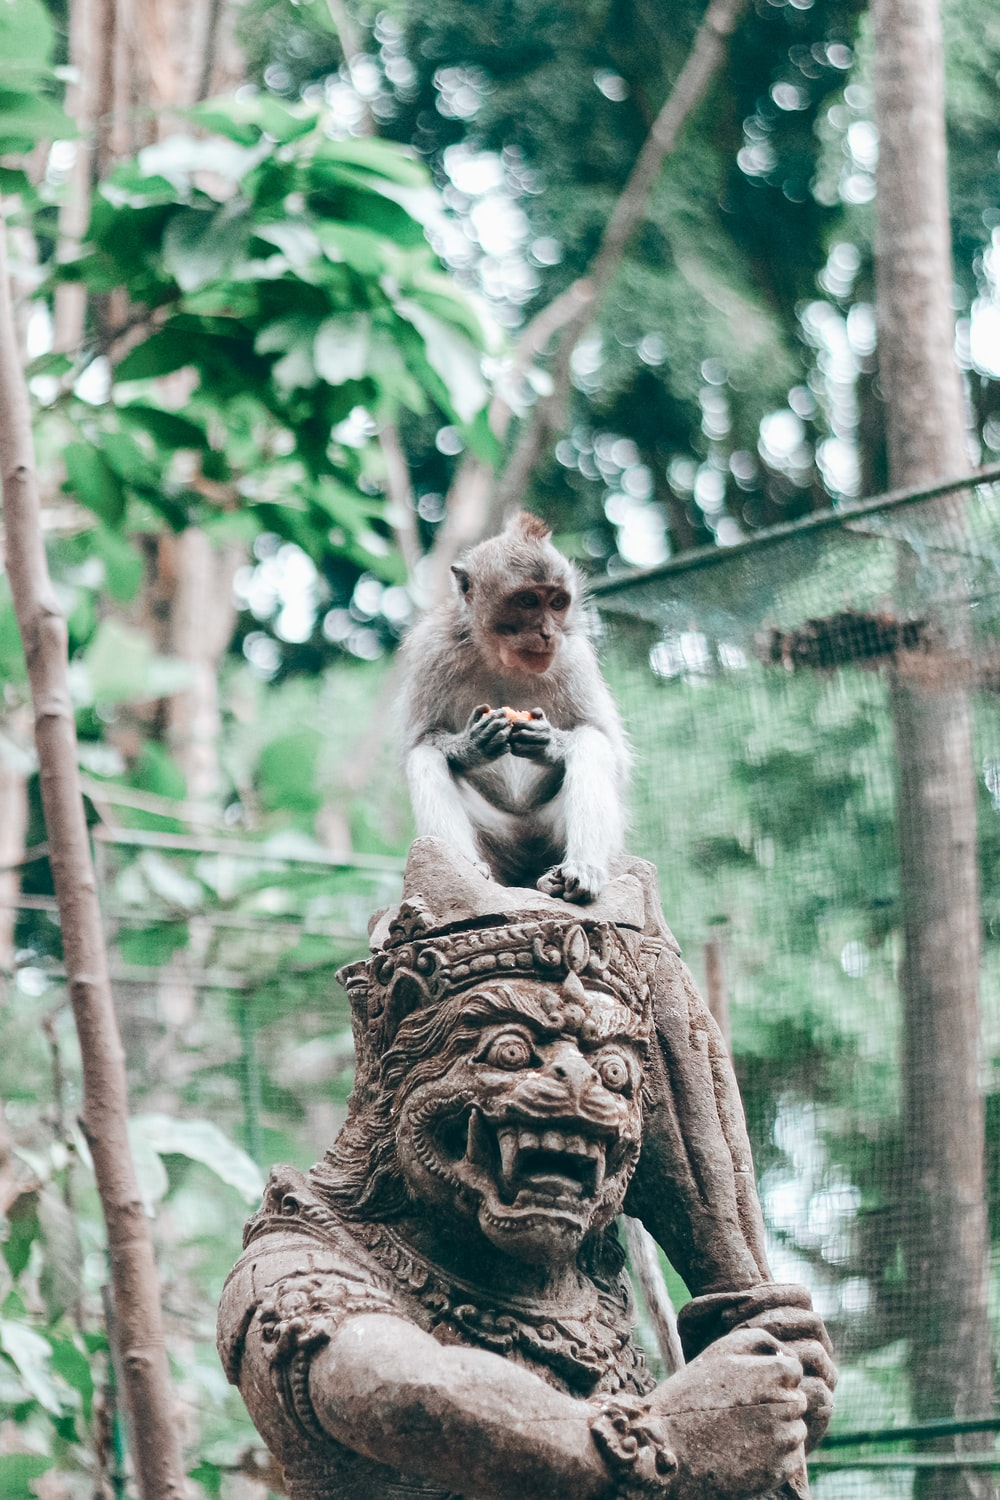 brown monkey on brown tree trunk during daytime